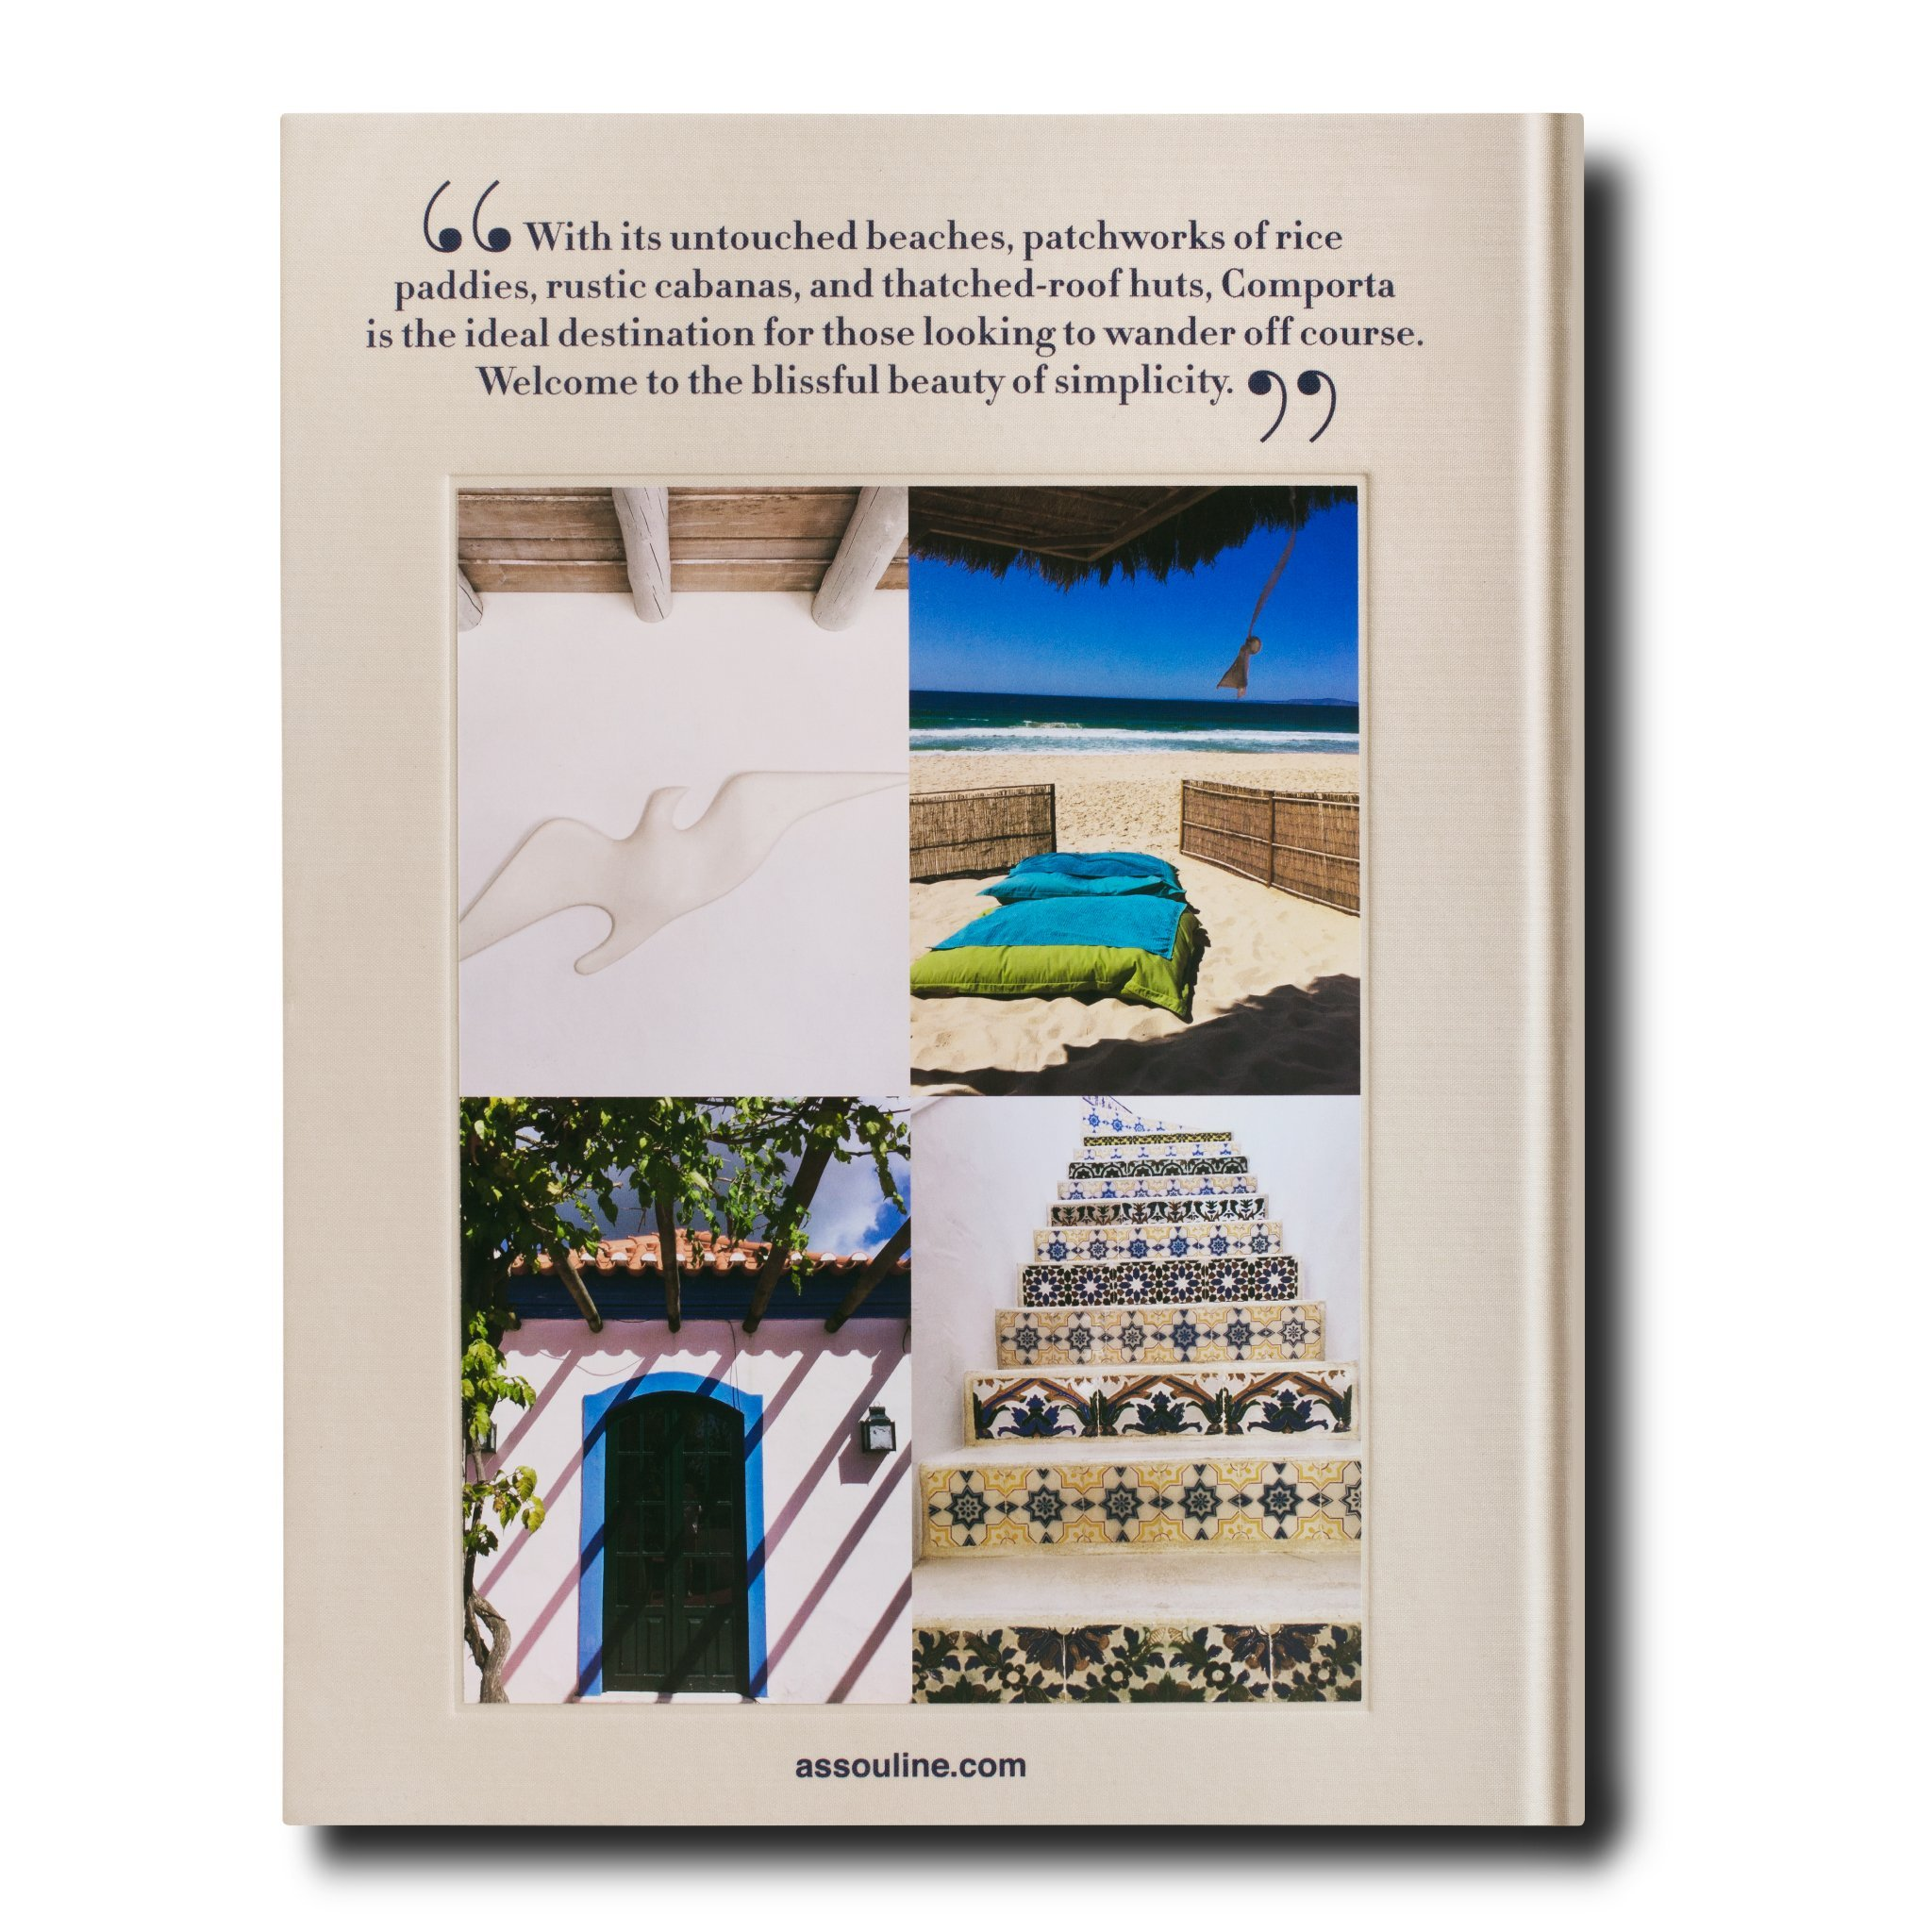 Contracapa Comporta Bliss © Assouline